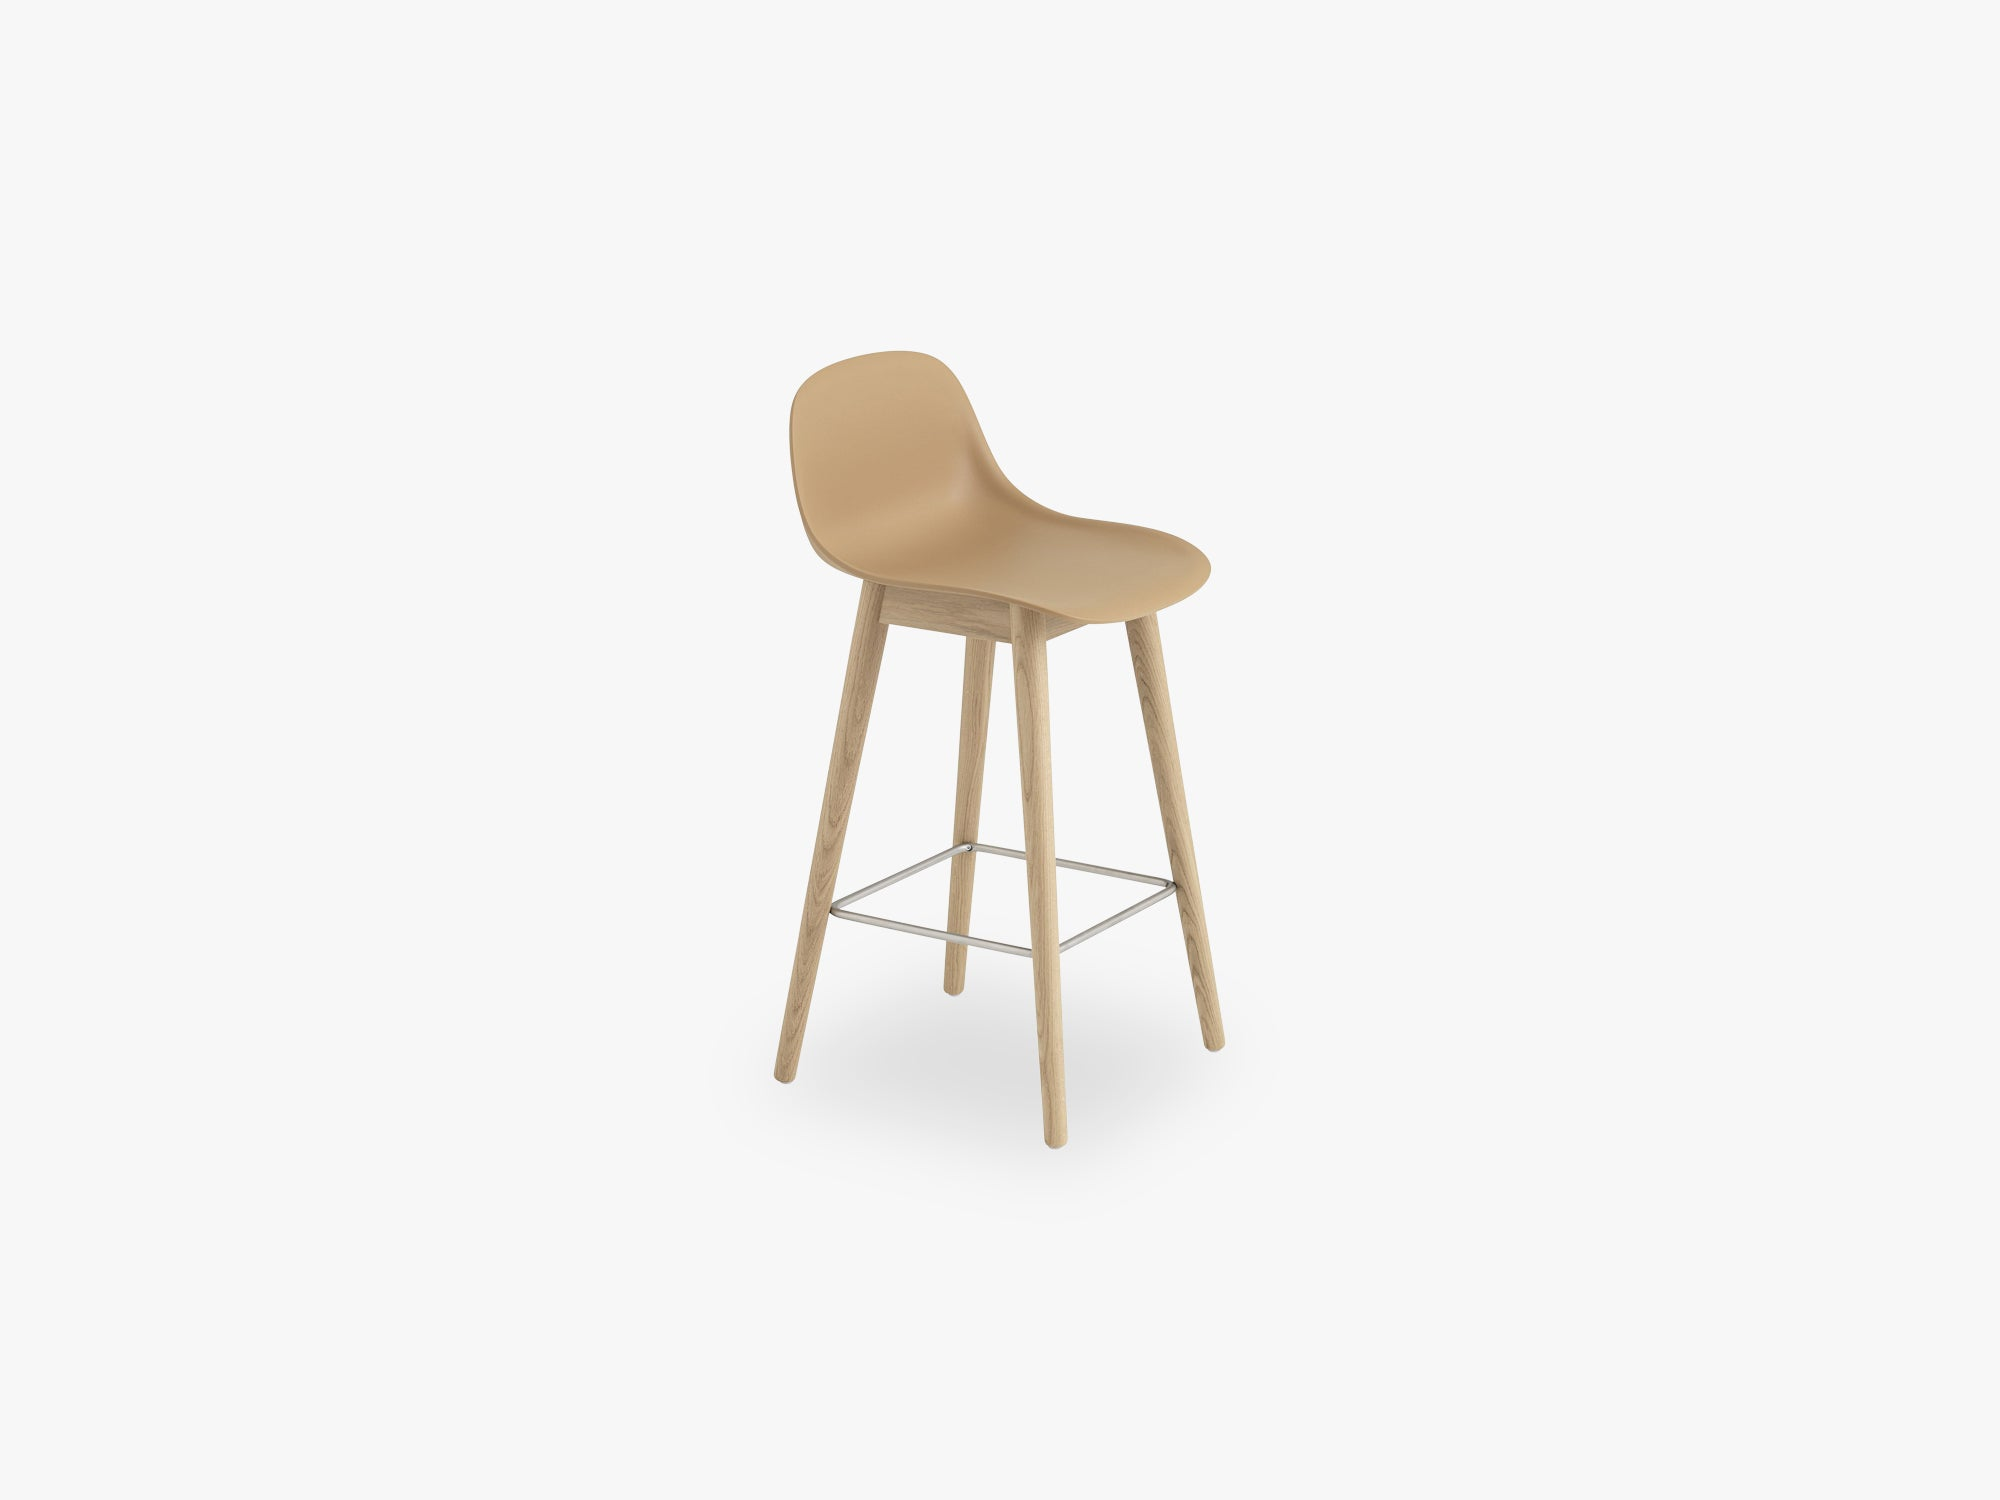 Fiber Bar Stool W Backrest - Wood Base H: 65 Cm, Ochre/Oak fra Muuto